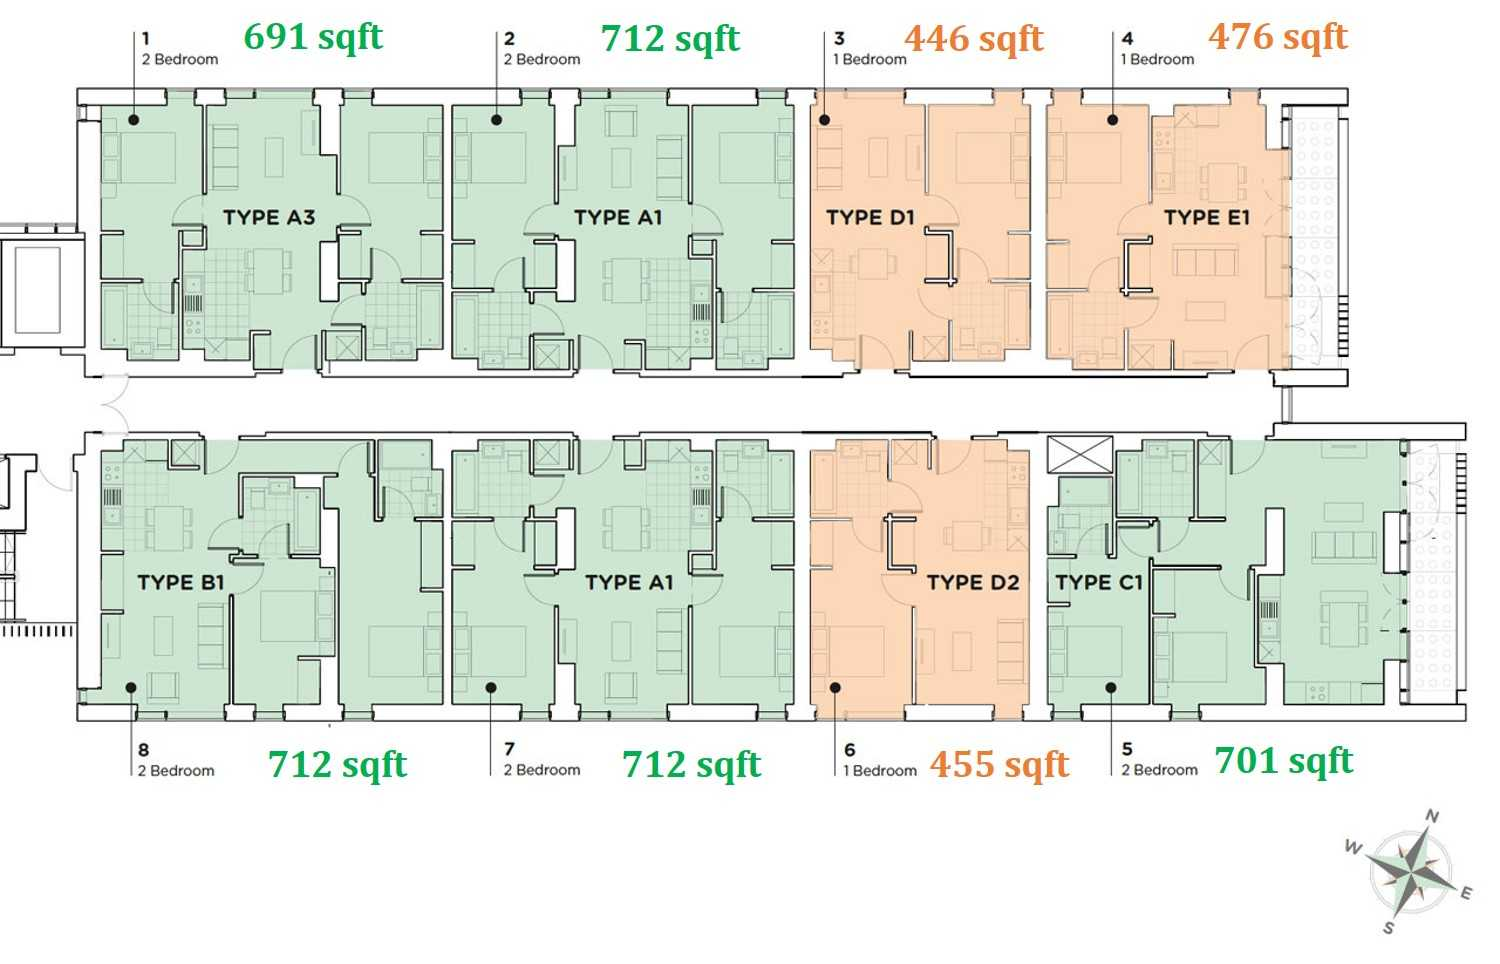 oxygen-manchester-floor-plan-typical